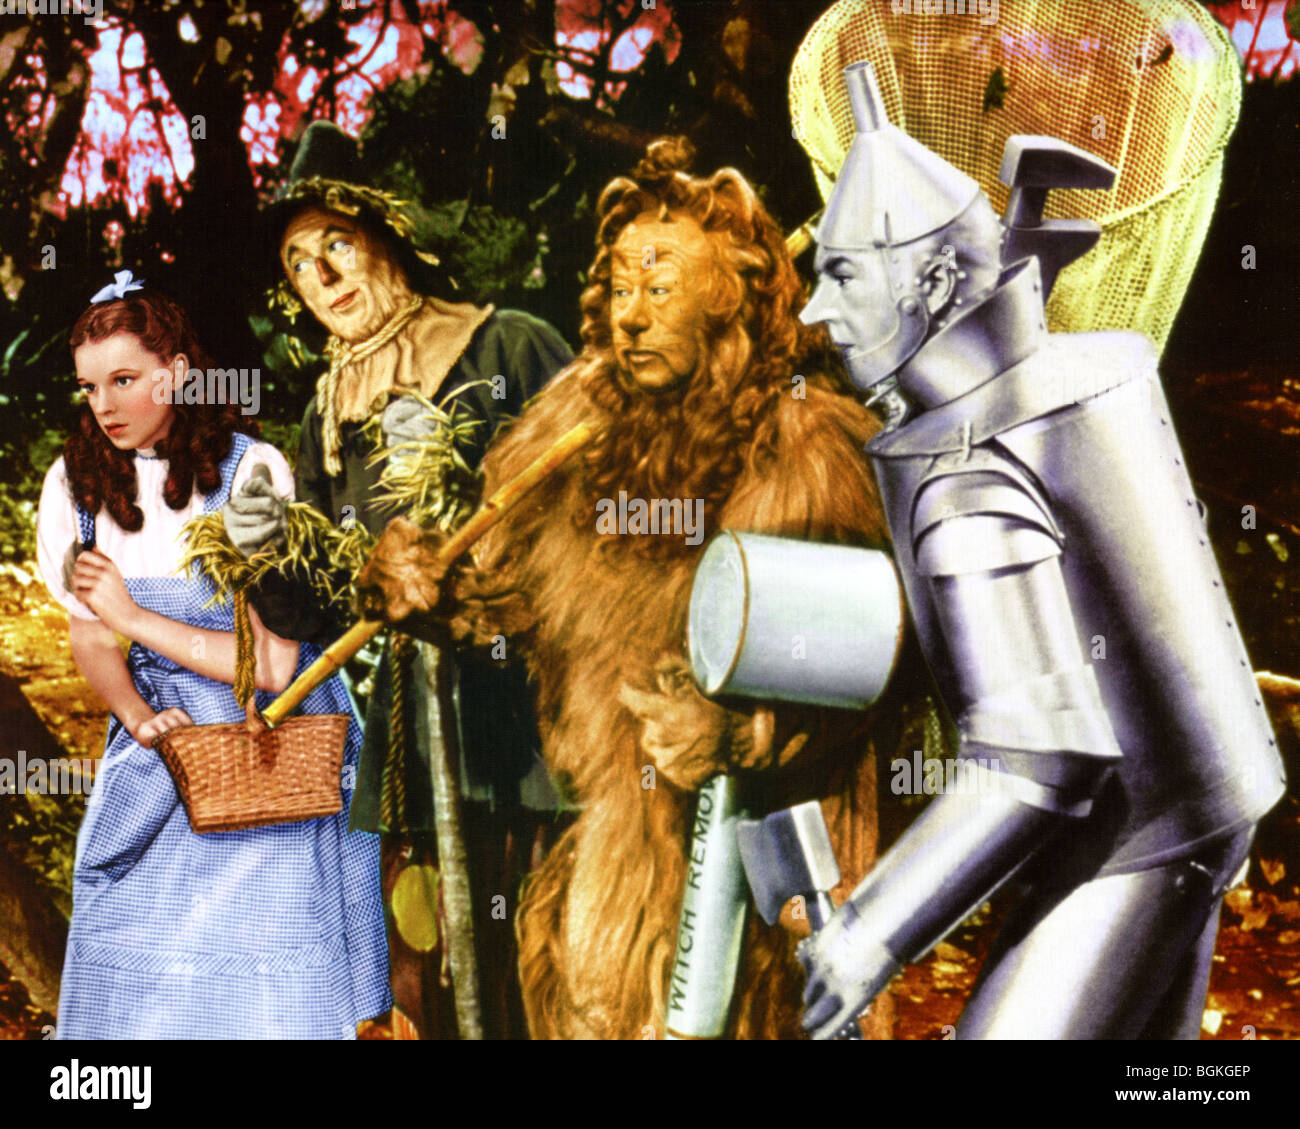 The Wizard Of Oz 1939 Mgm Film With Judy Garland See Description